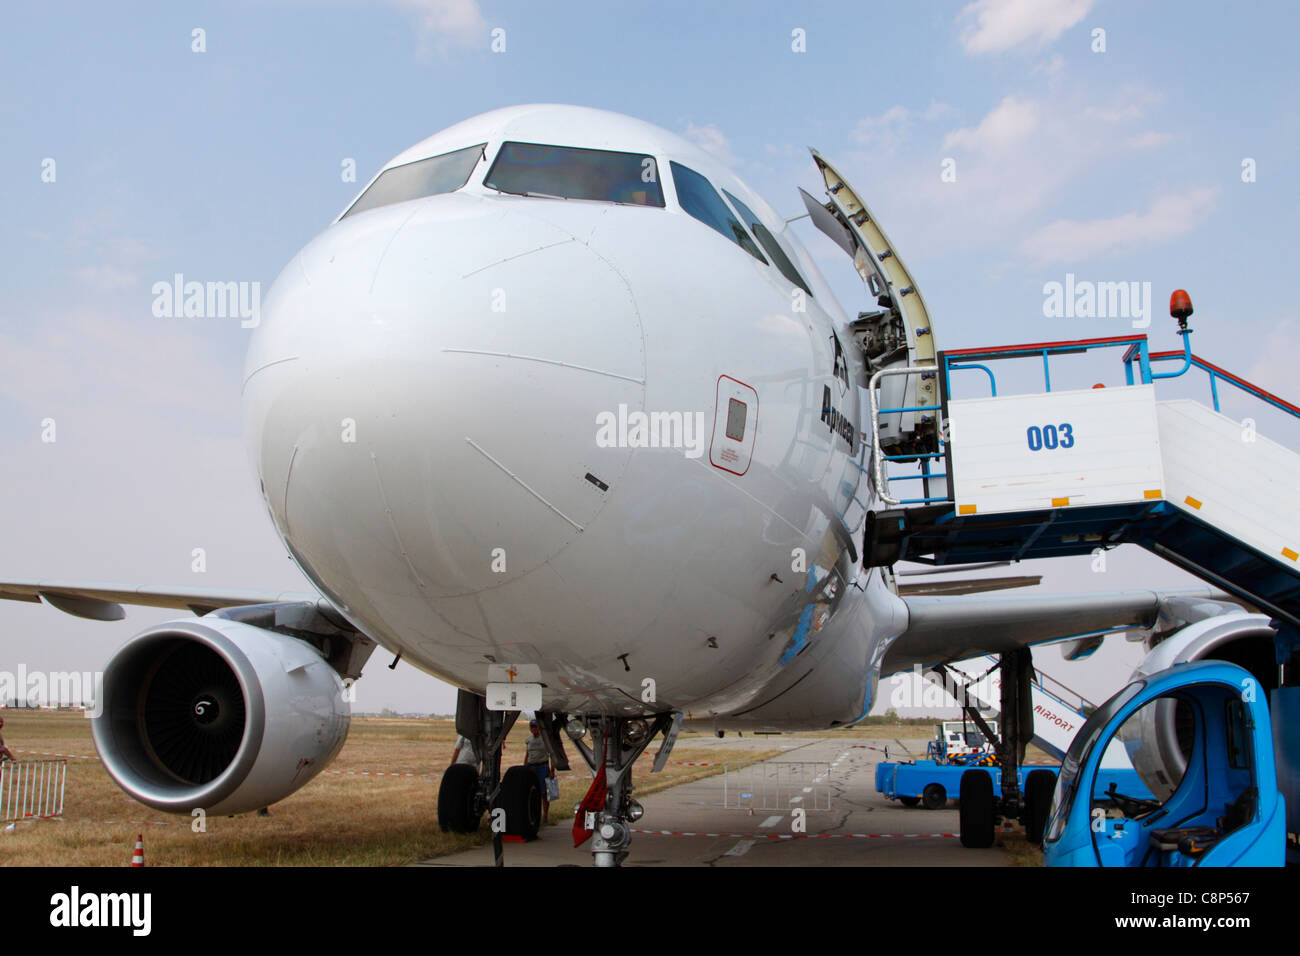 Frontal view of a Bulgarian Airways Airbus A320 at Plovdiv Airport in central Bulgaria - Stock Image